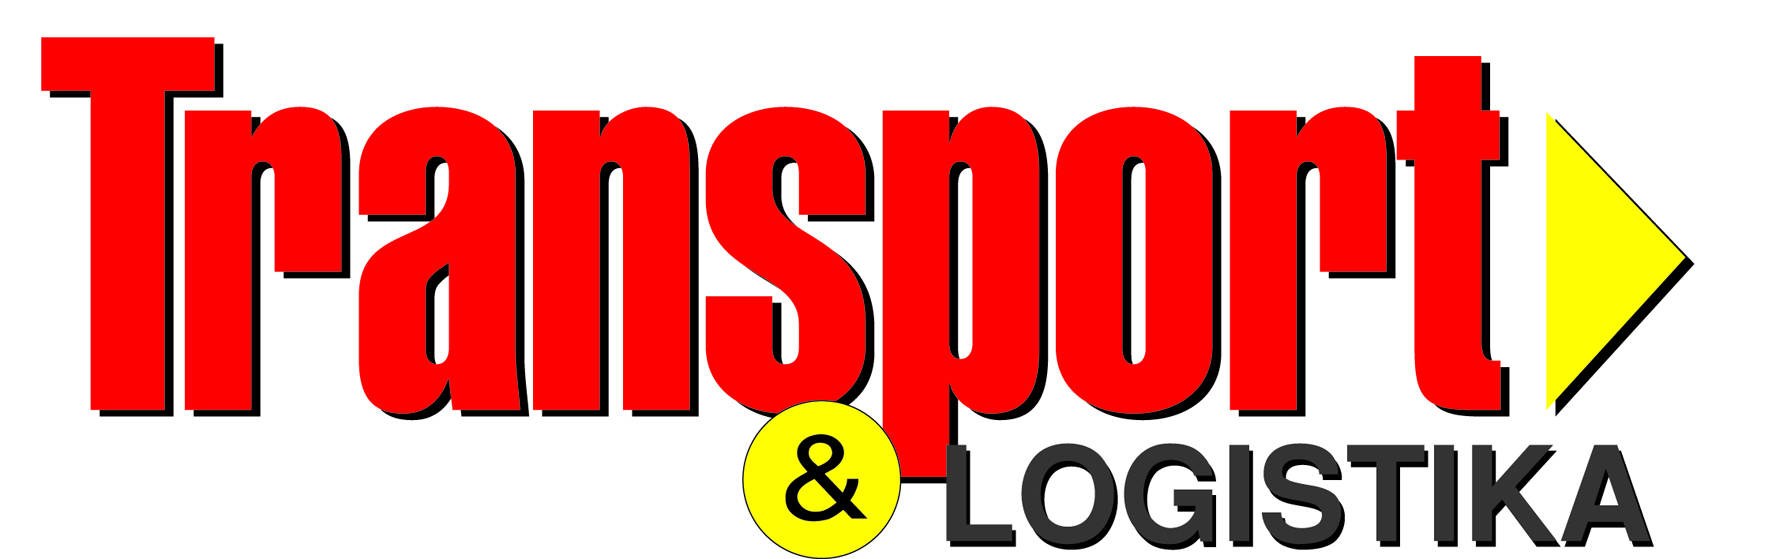 logo transport & logistika